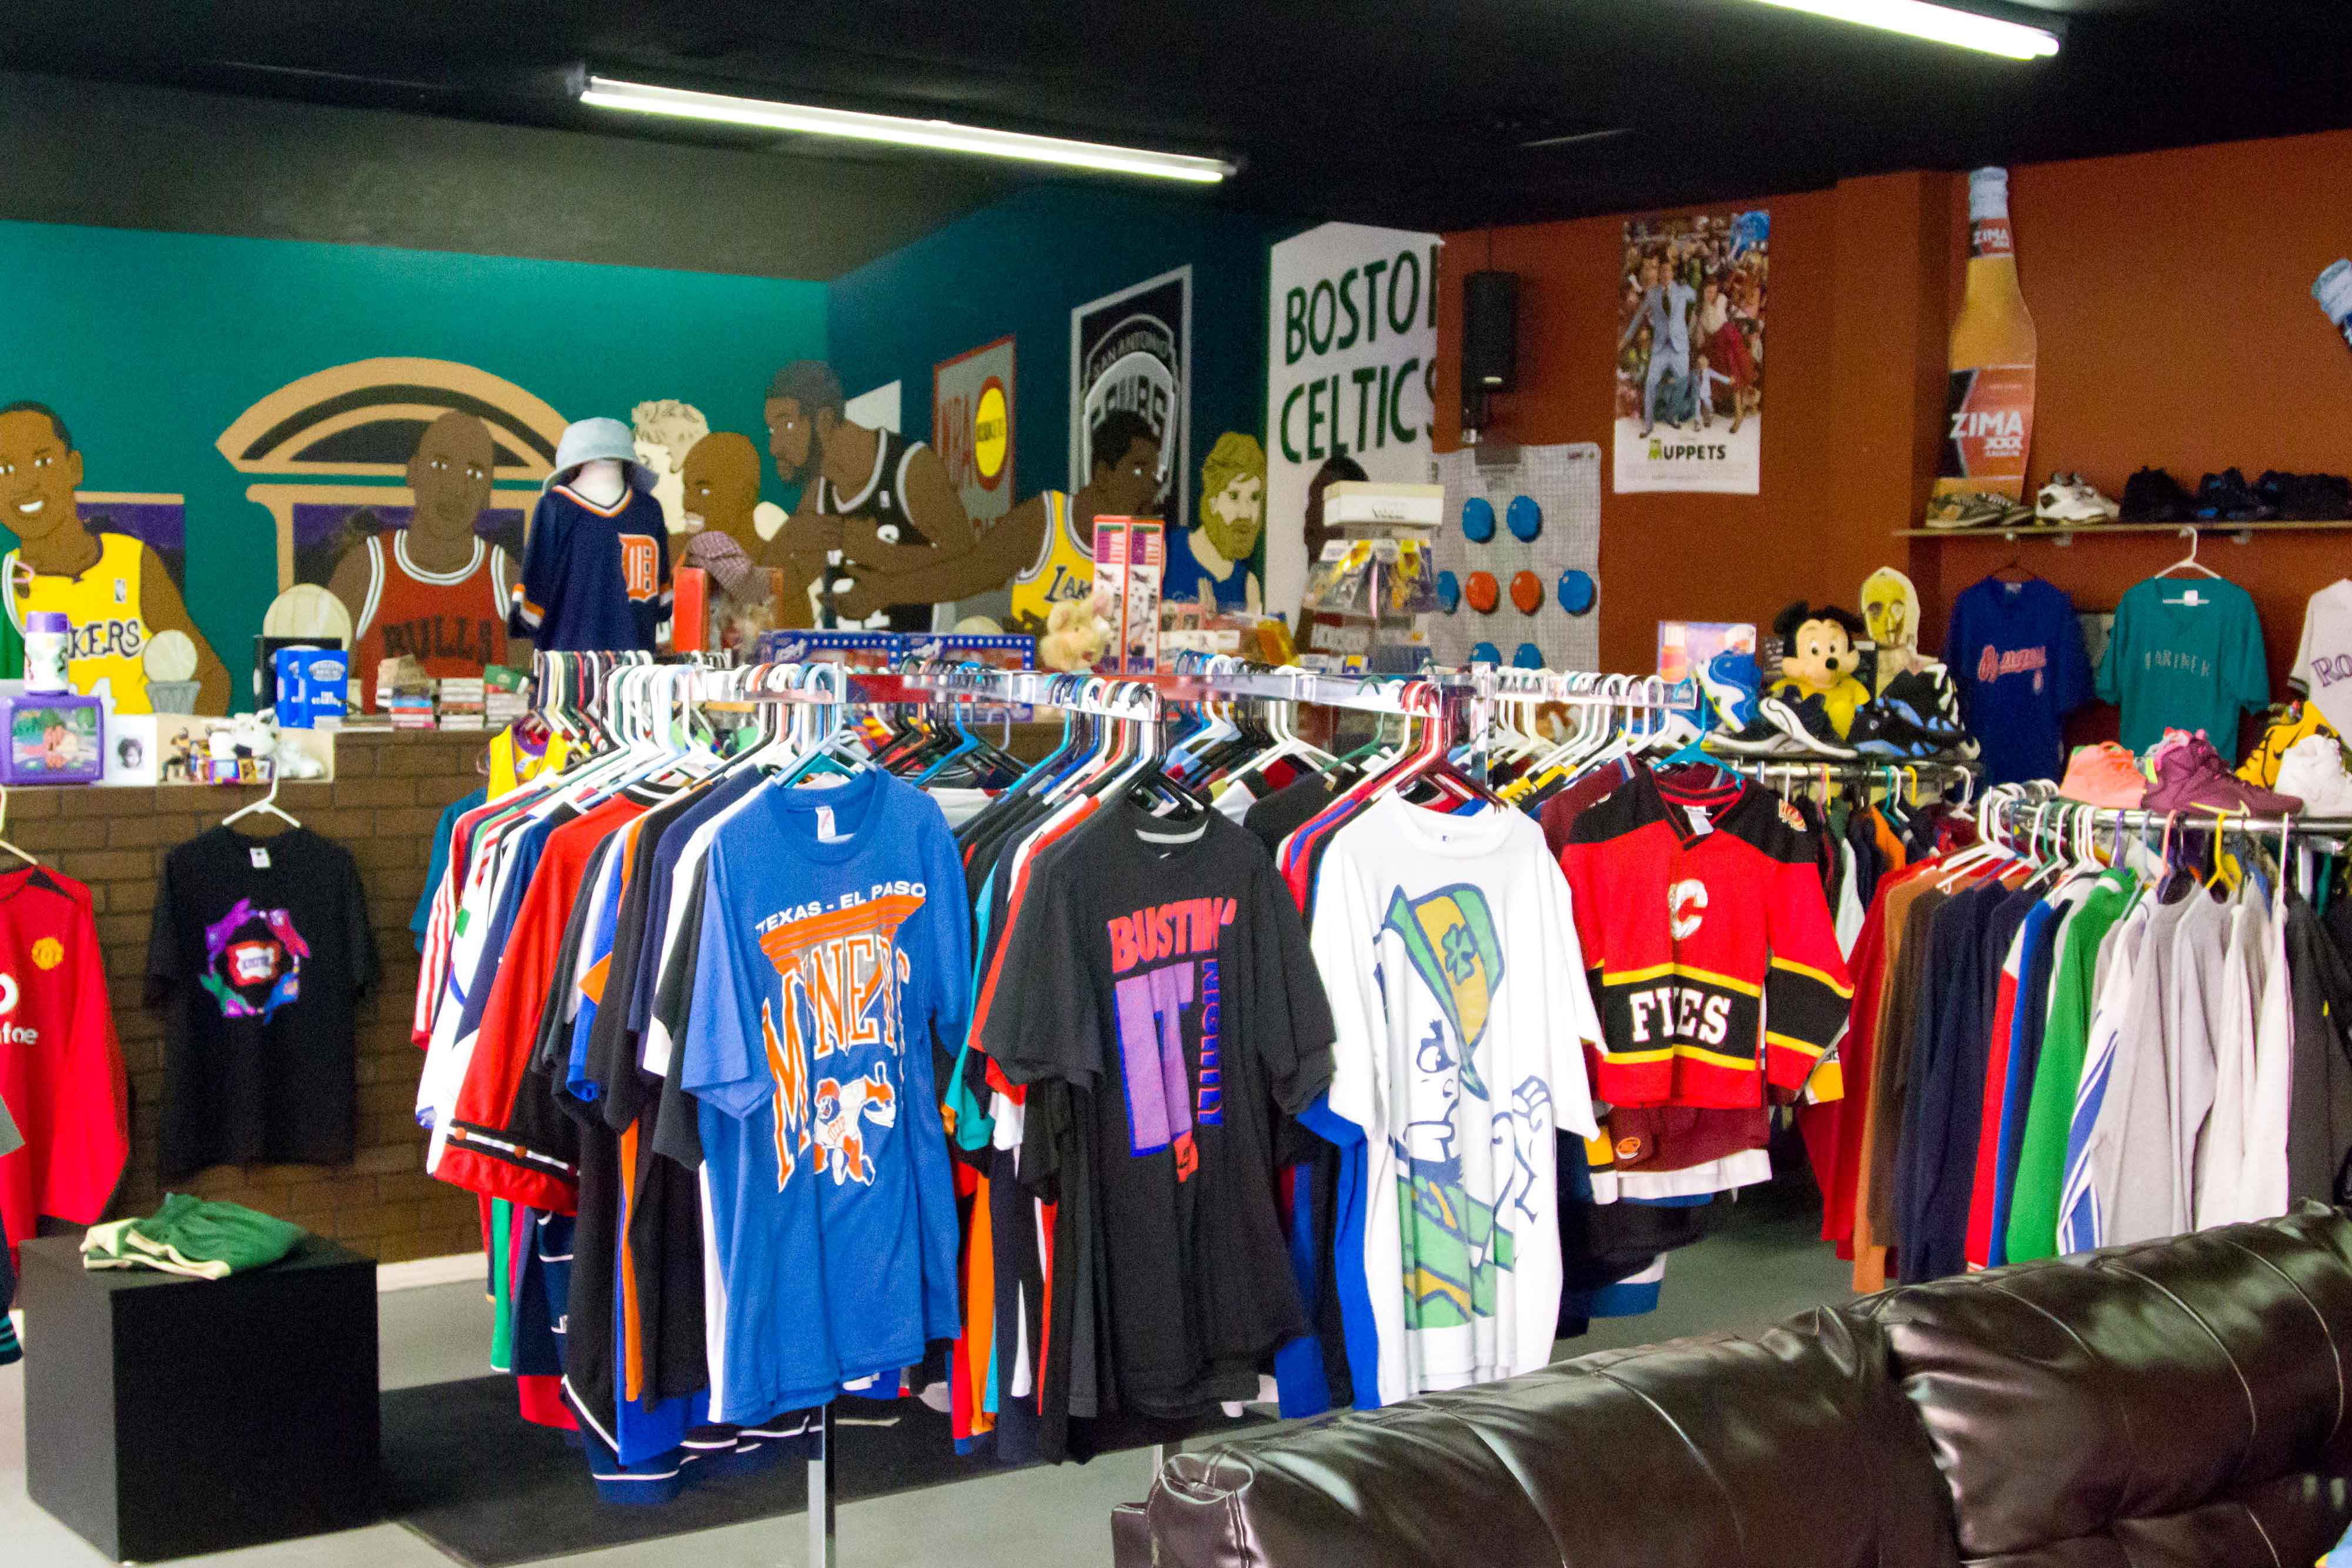 Sun City Throwback is currently located at 1840 N. Lee Trevino until May.